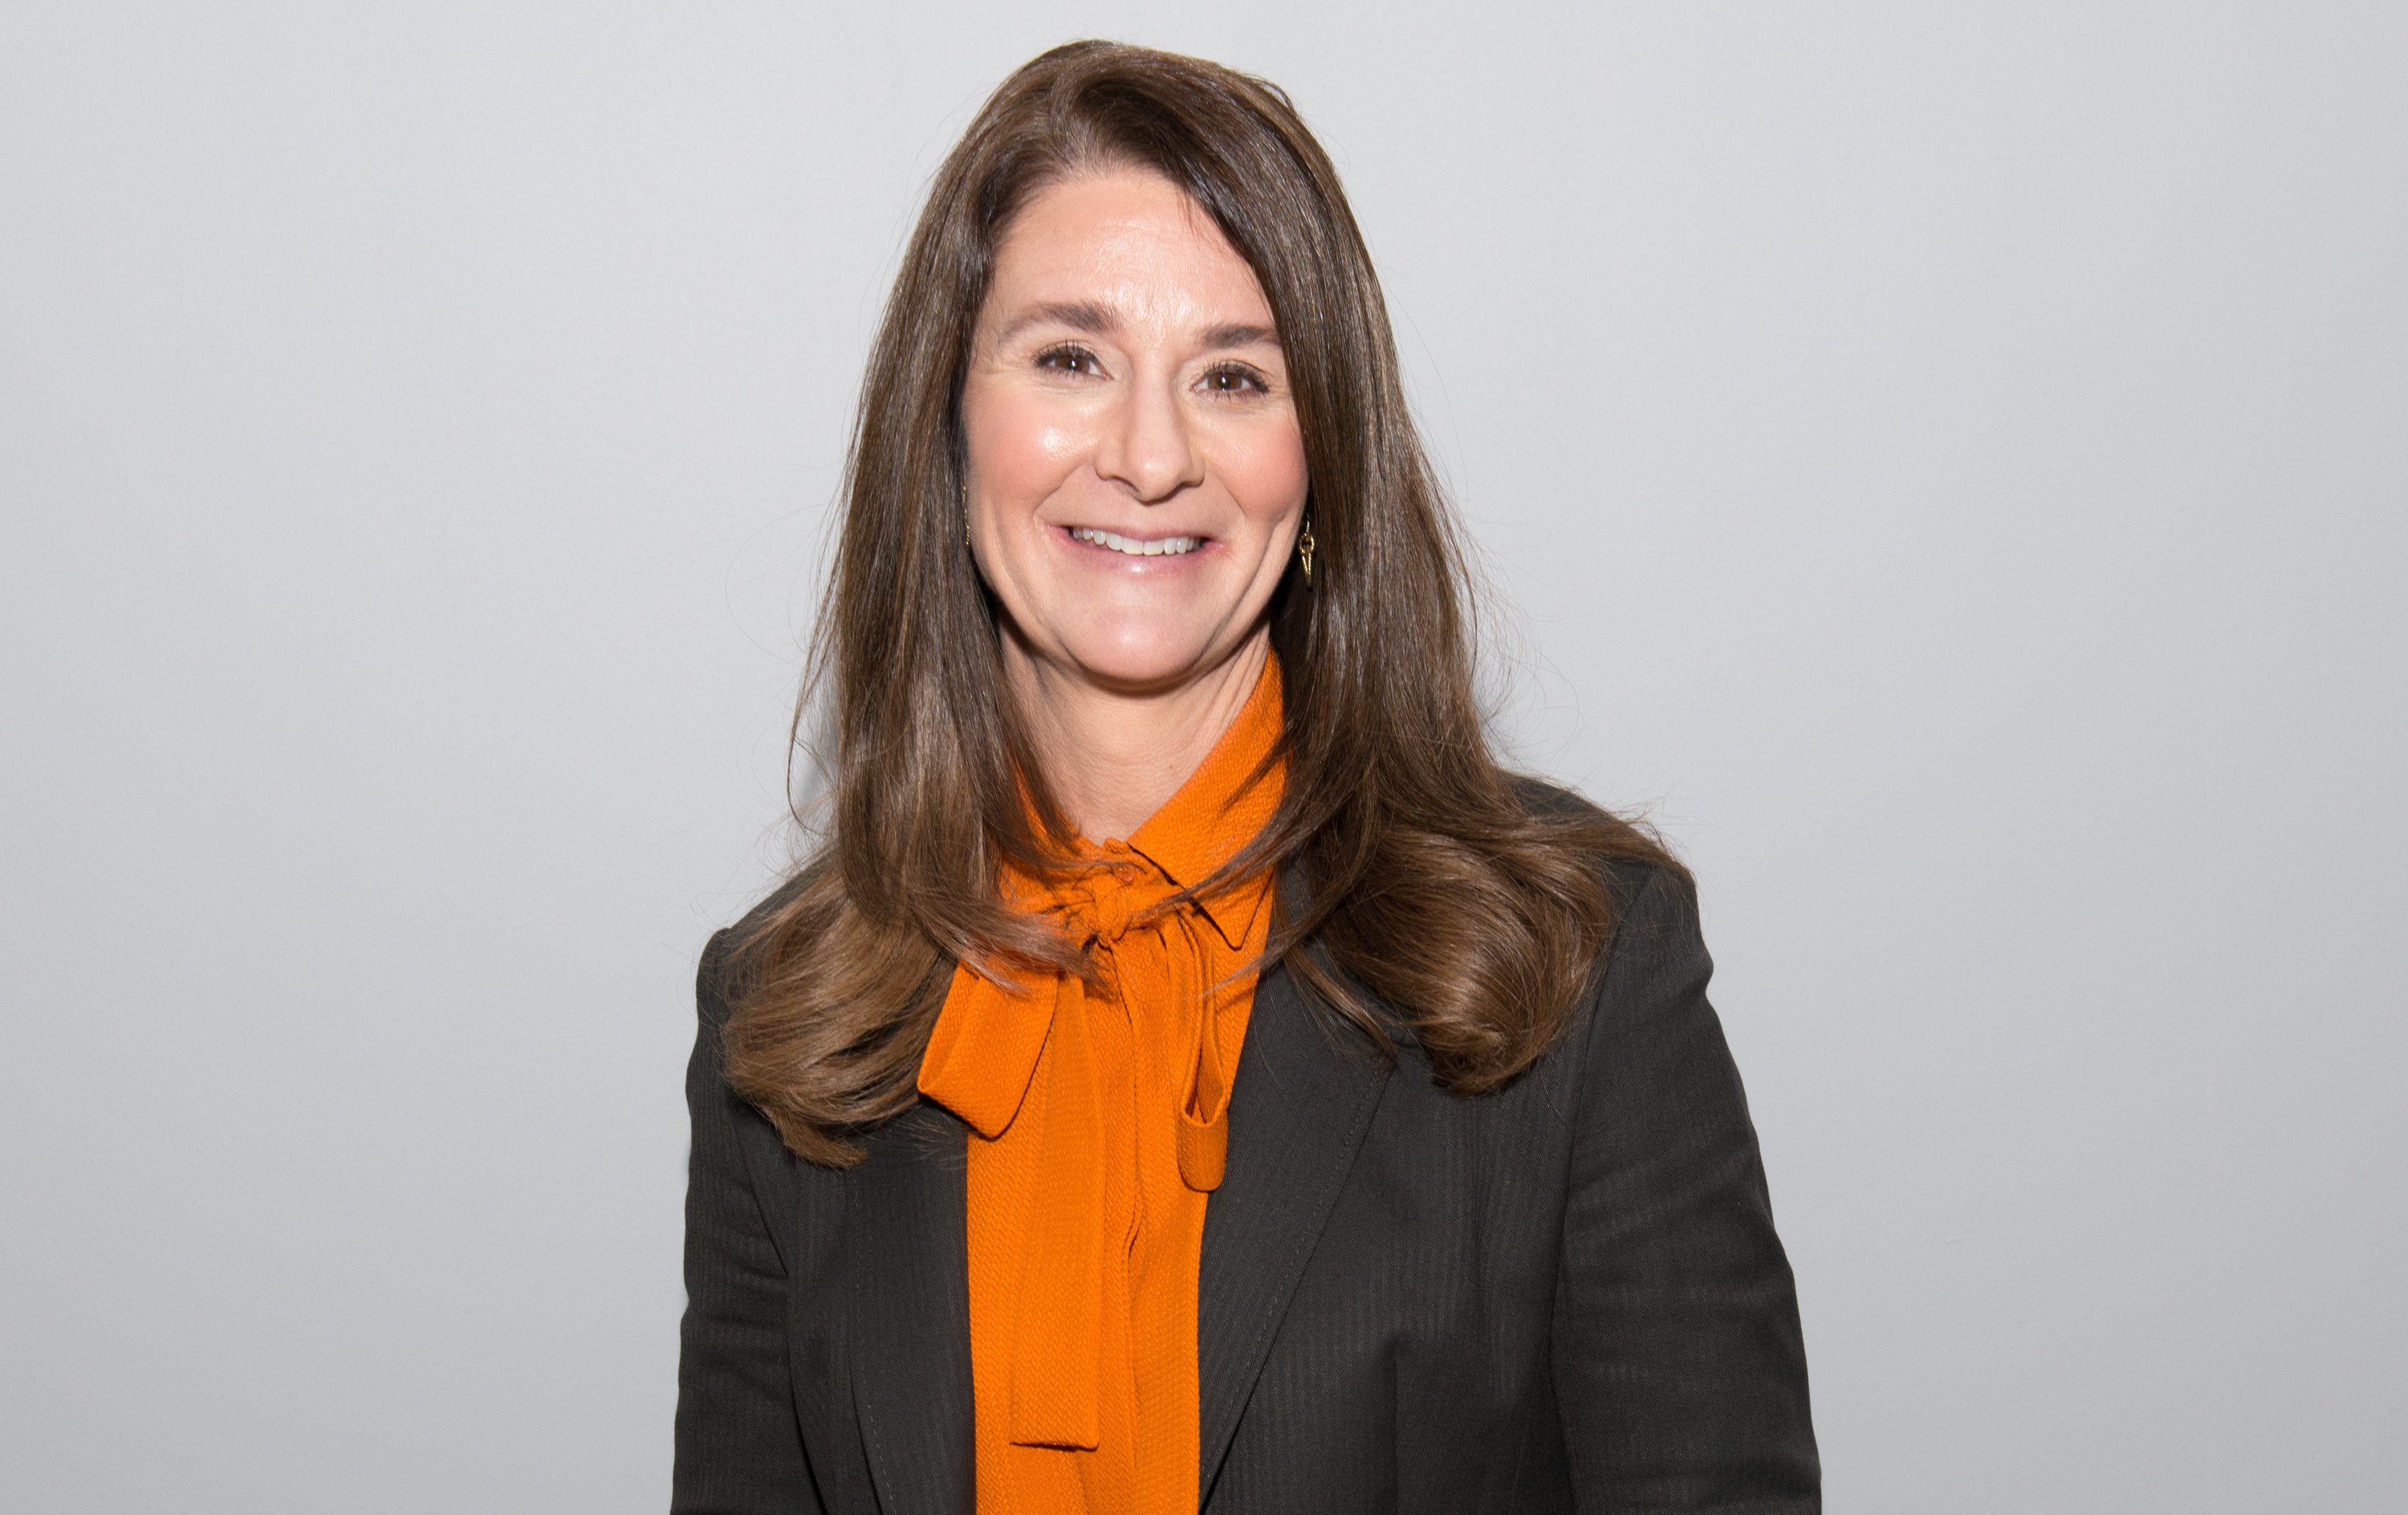 Co-chair of the Bill and Melinda Gates Foundation Melinda Gates attends the AOL BUILD Speaker Series at AOL Studios In New York on March 10, 2015 in New York City.